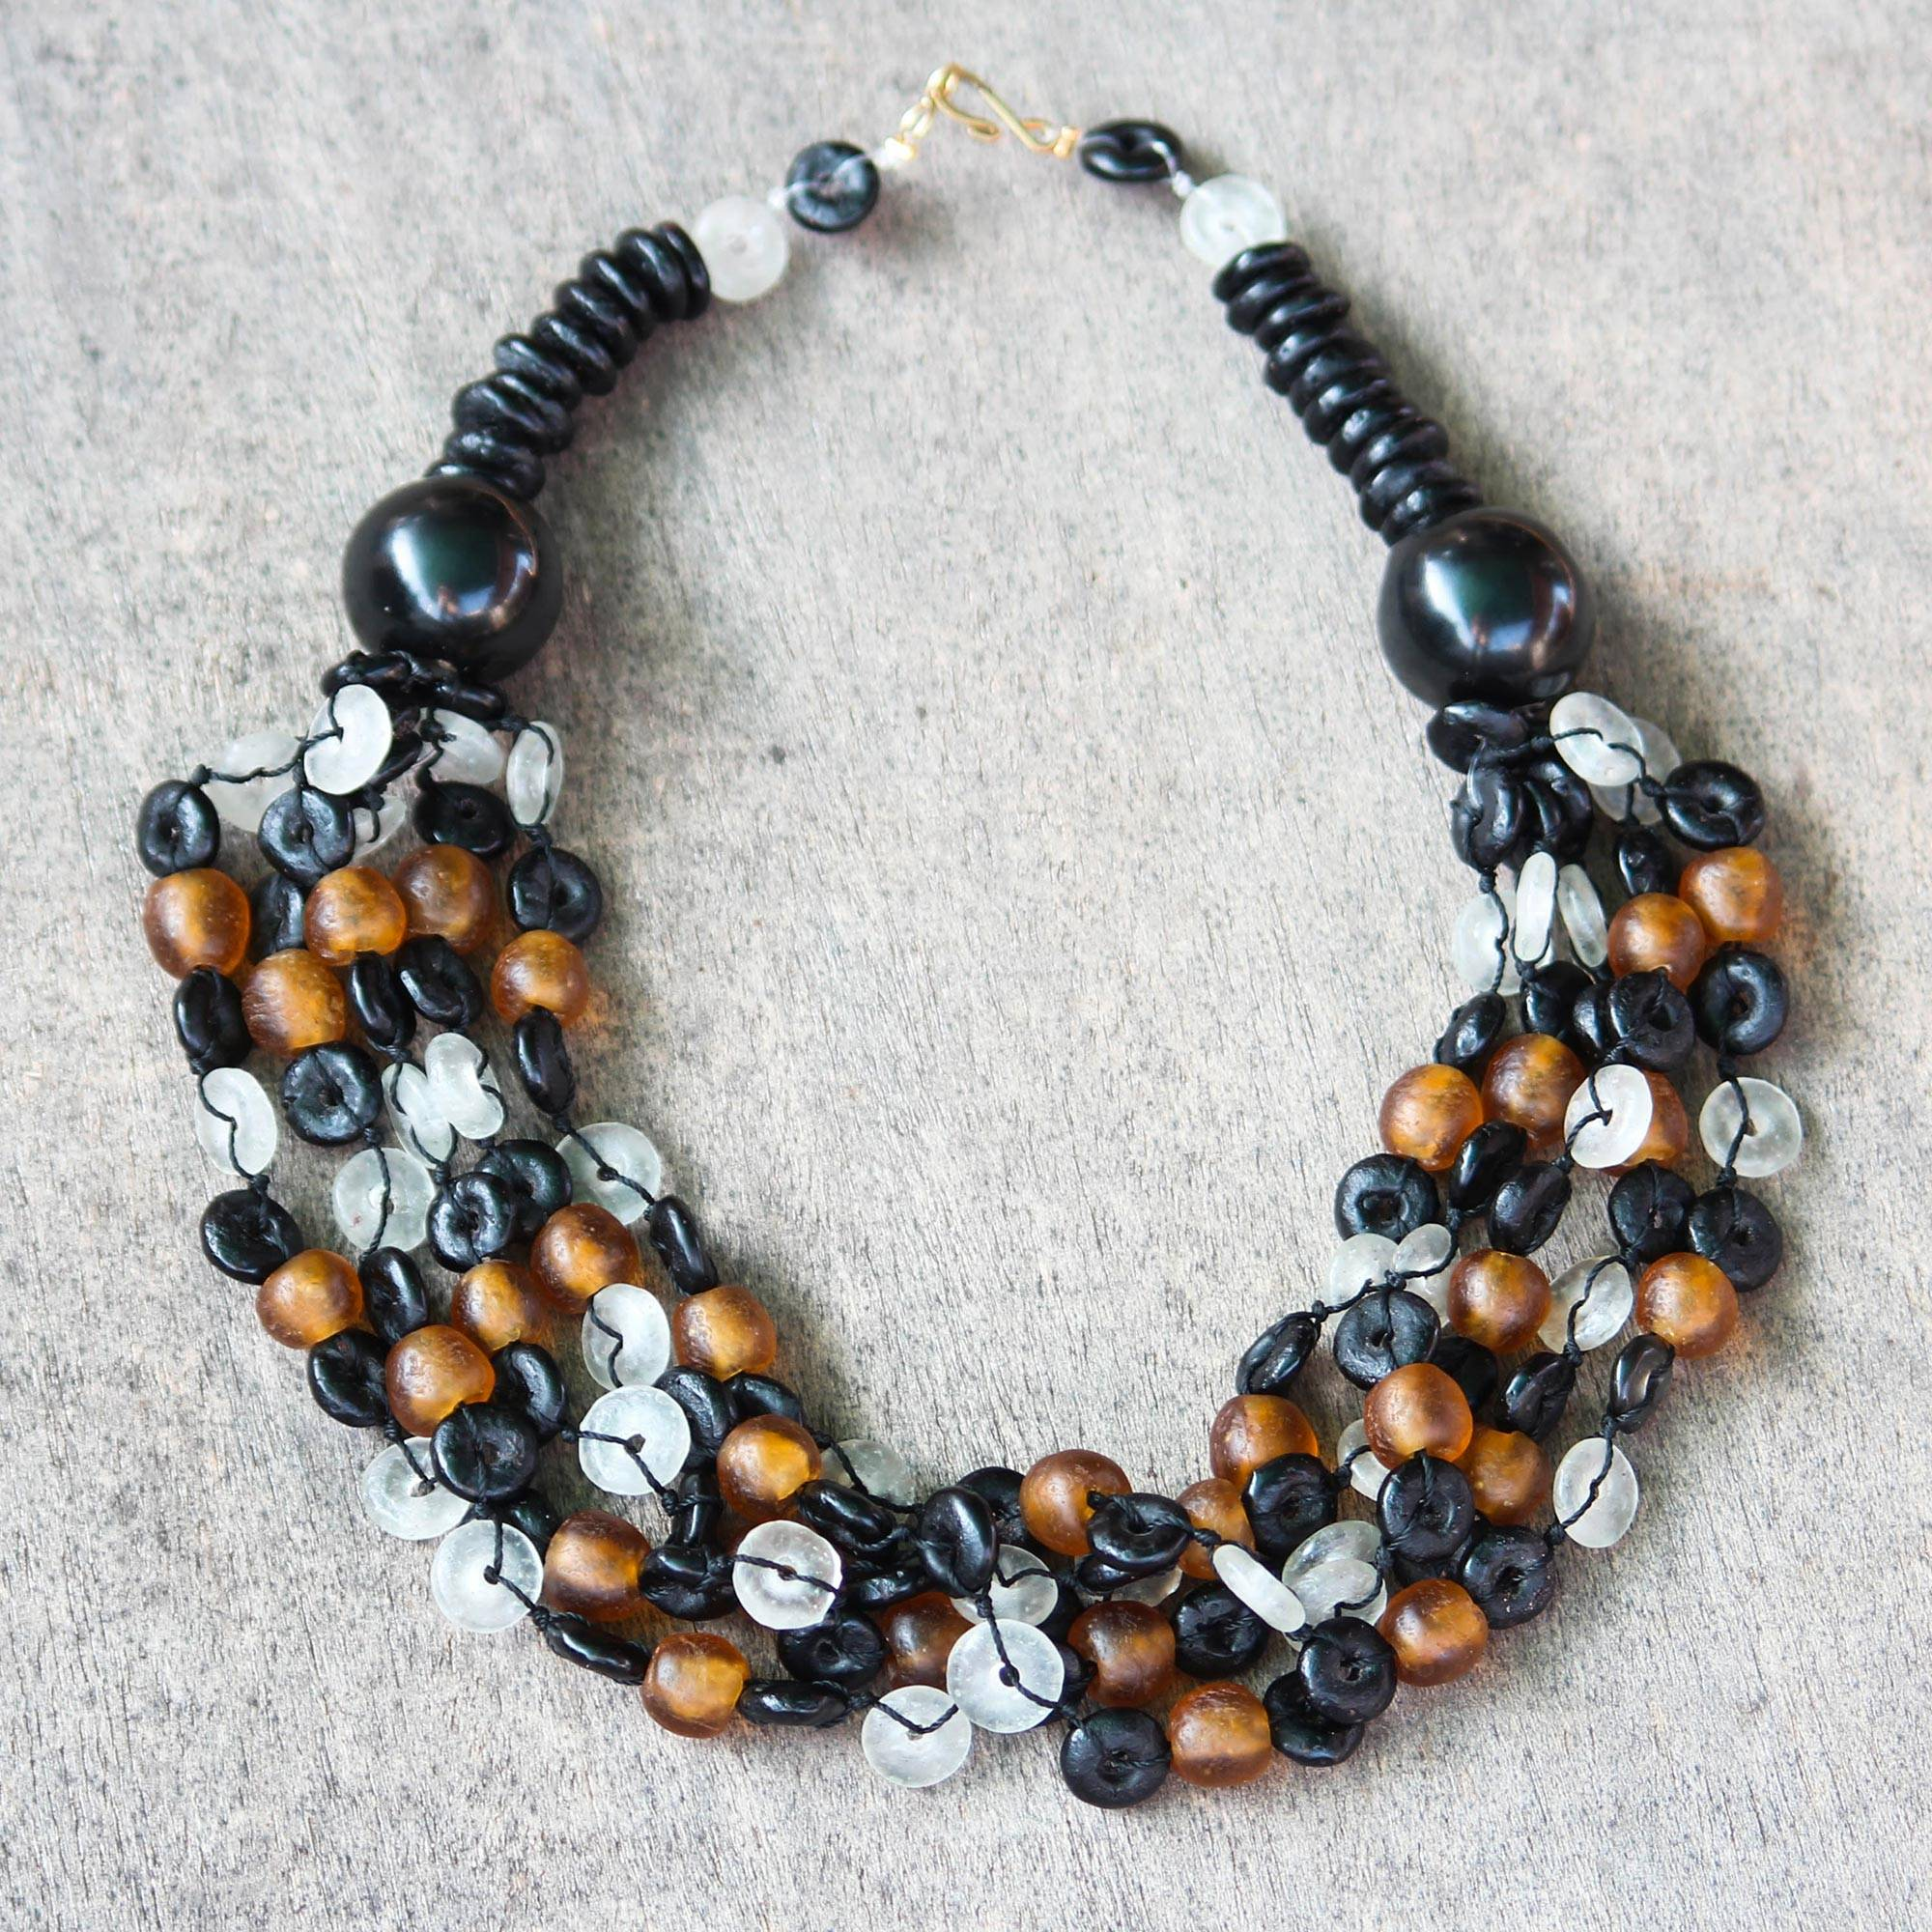 Deka Beaded Torsade Necklace Handcrafted with Recycled Glass The Perfect Necklace